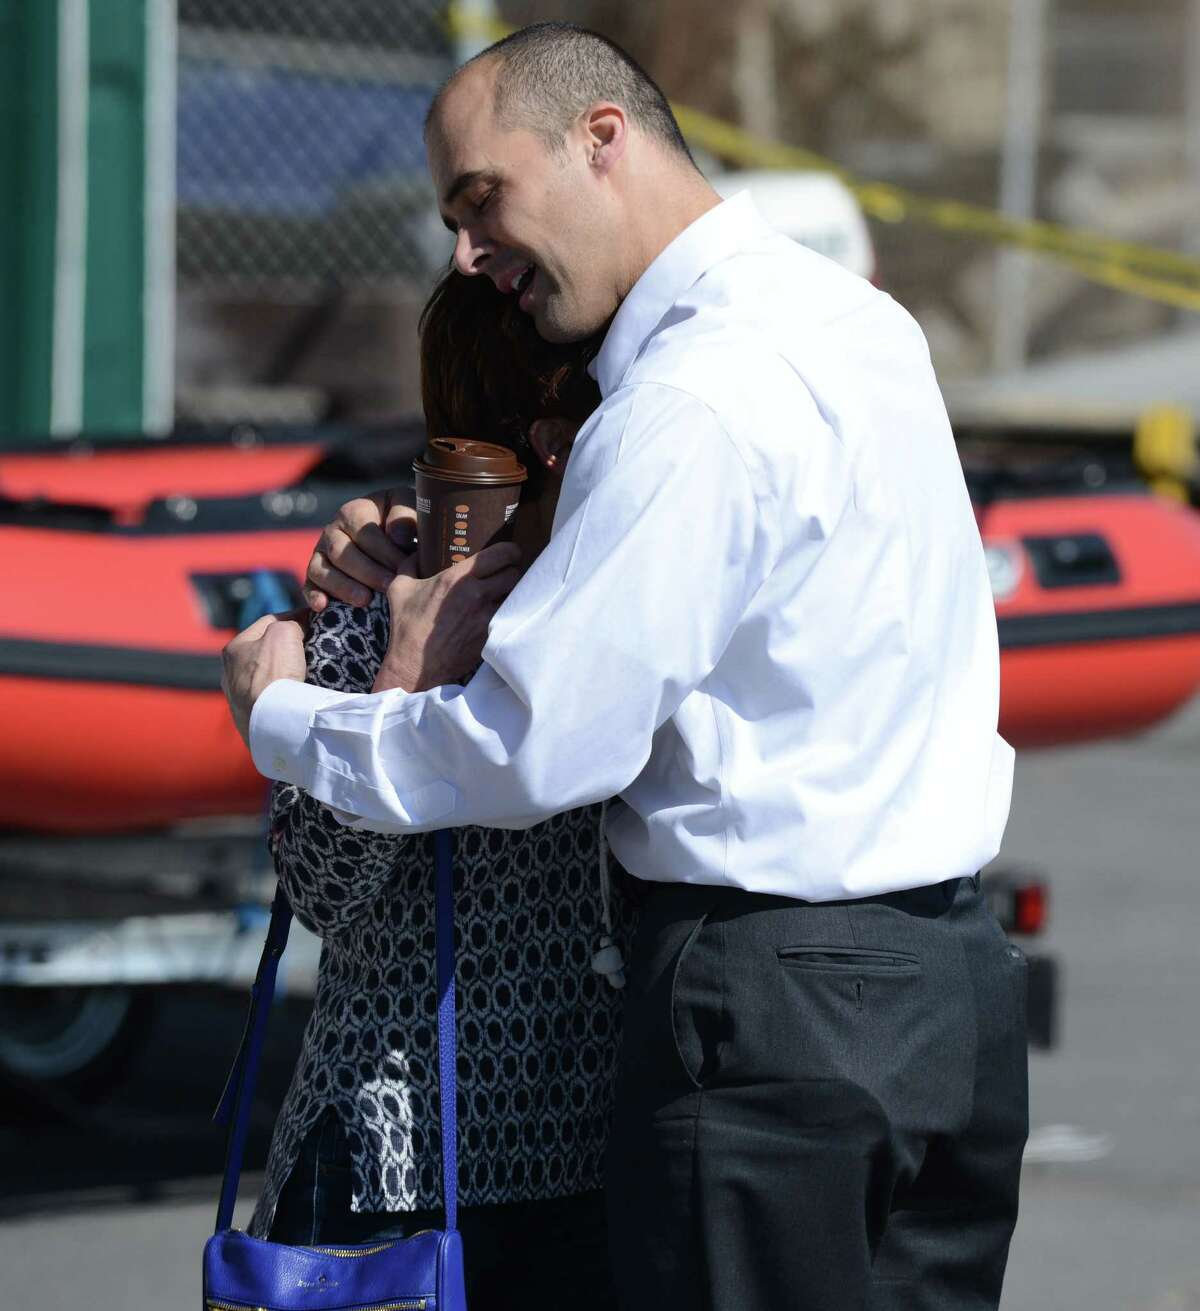 An unidentified woman is consoled by a police investigator after a body was recovered from the Hudson River on Wednesday, March, 9, 2016, in Albany, N.Y. Police have yet to release an ID. Witnesses said the body was spotted at low tide. (Will Waldron/Times Union)